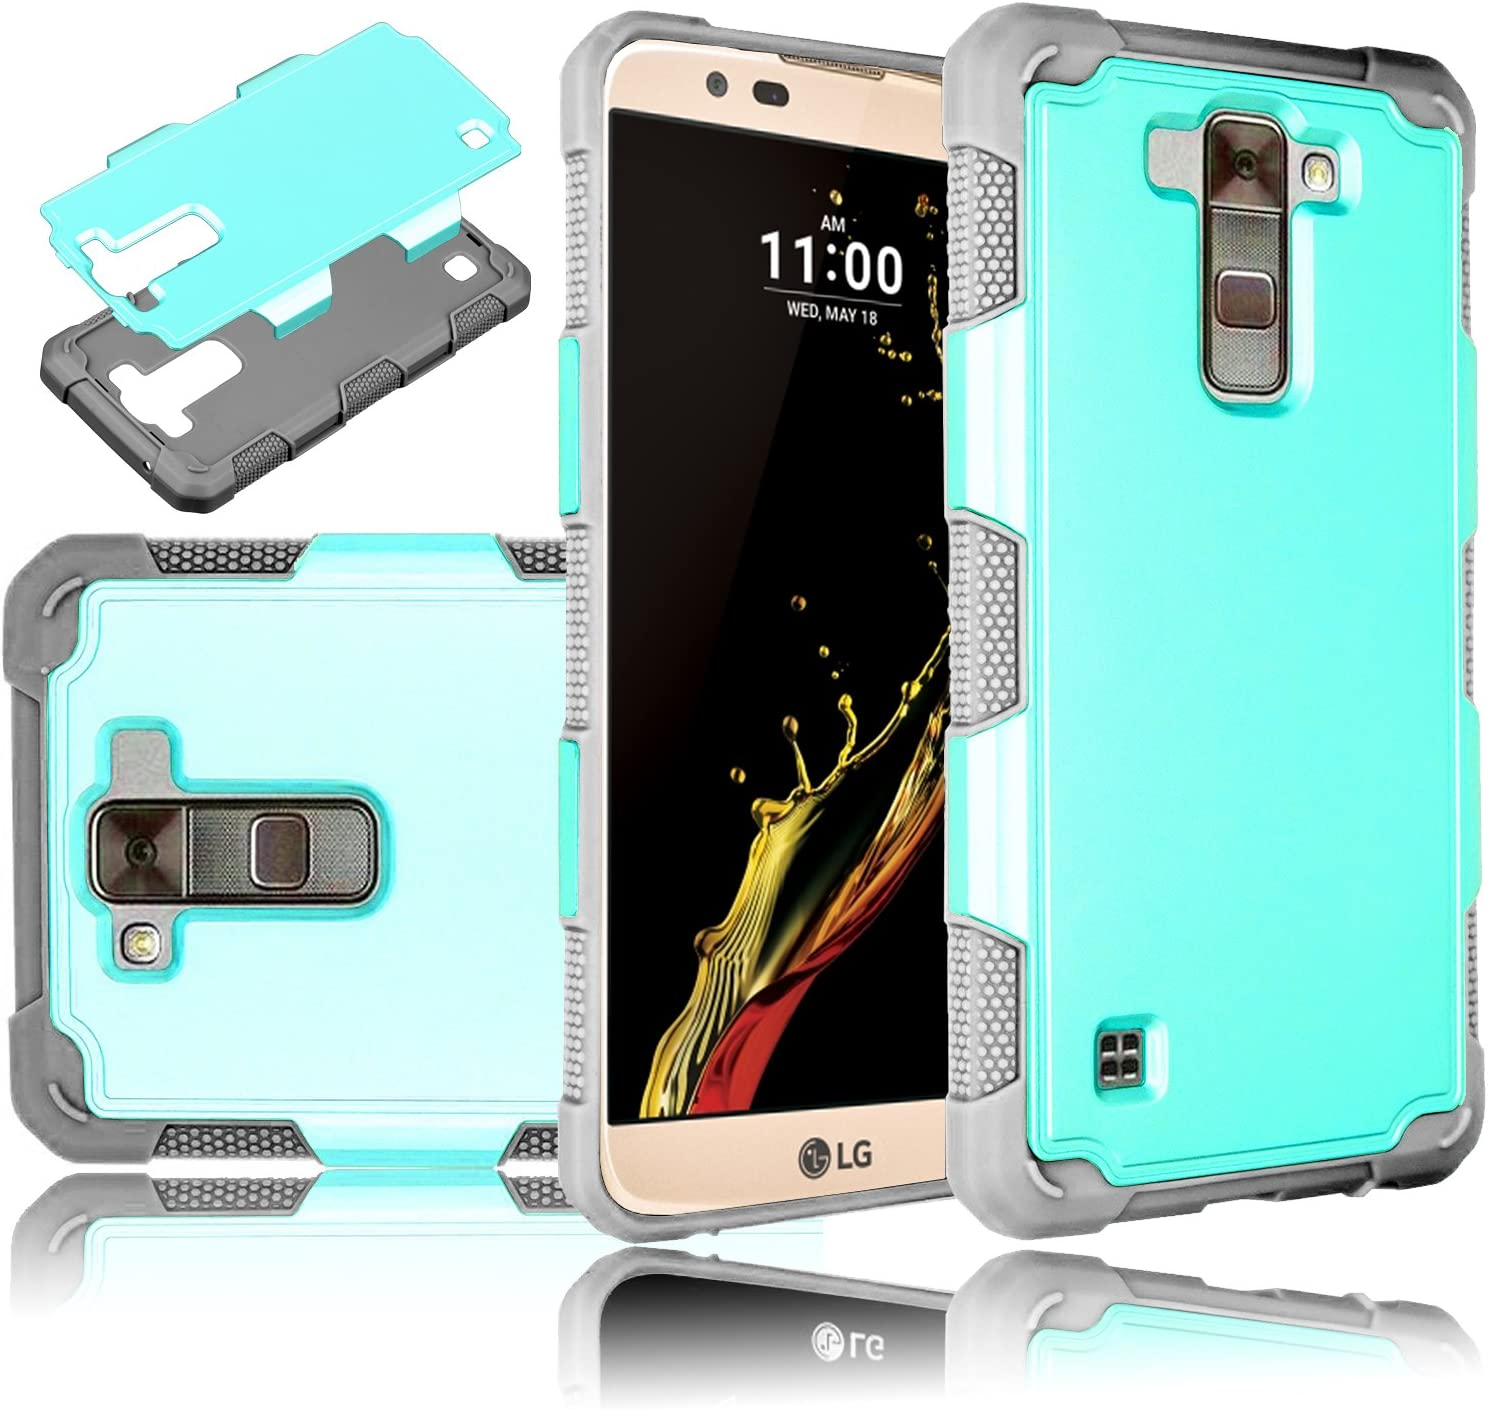 LG K10 Case, LG Premier LTE Case, Elegant Choise Ultra Thin Hybrid Shockproof Dual Layer Rugged Armor Hard Case Cover for LG K10/LG Premier LTE L62VL L61AL (2016)(Turquoise+Grey)